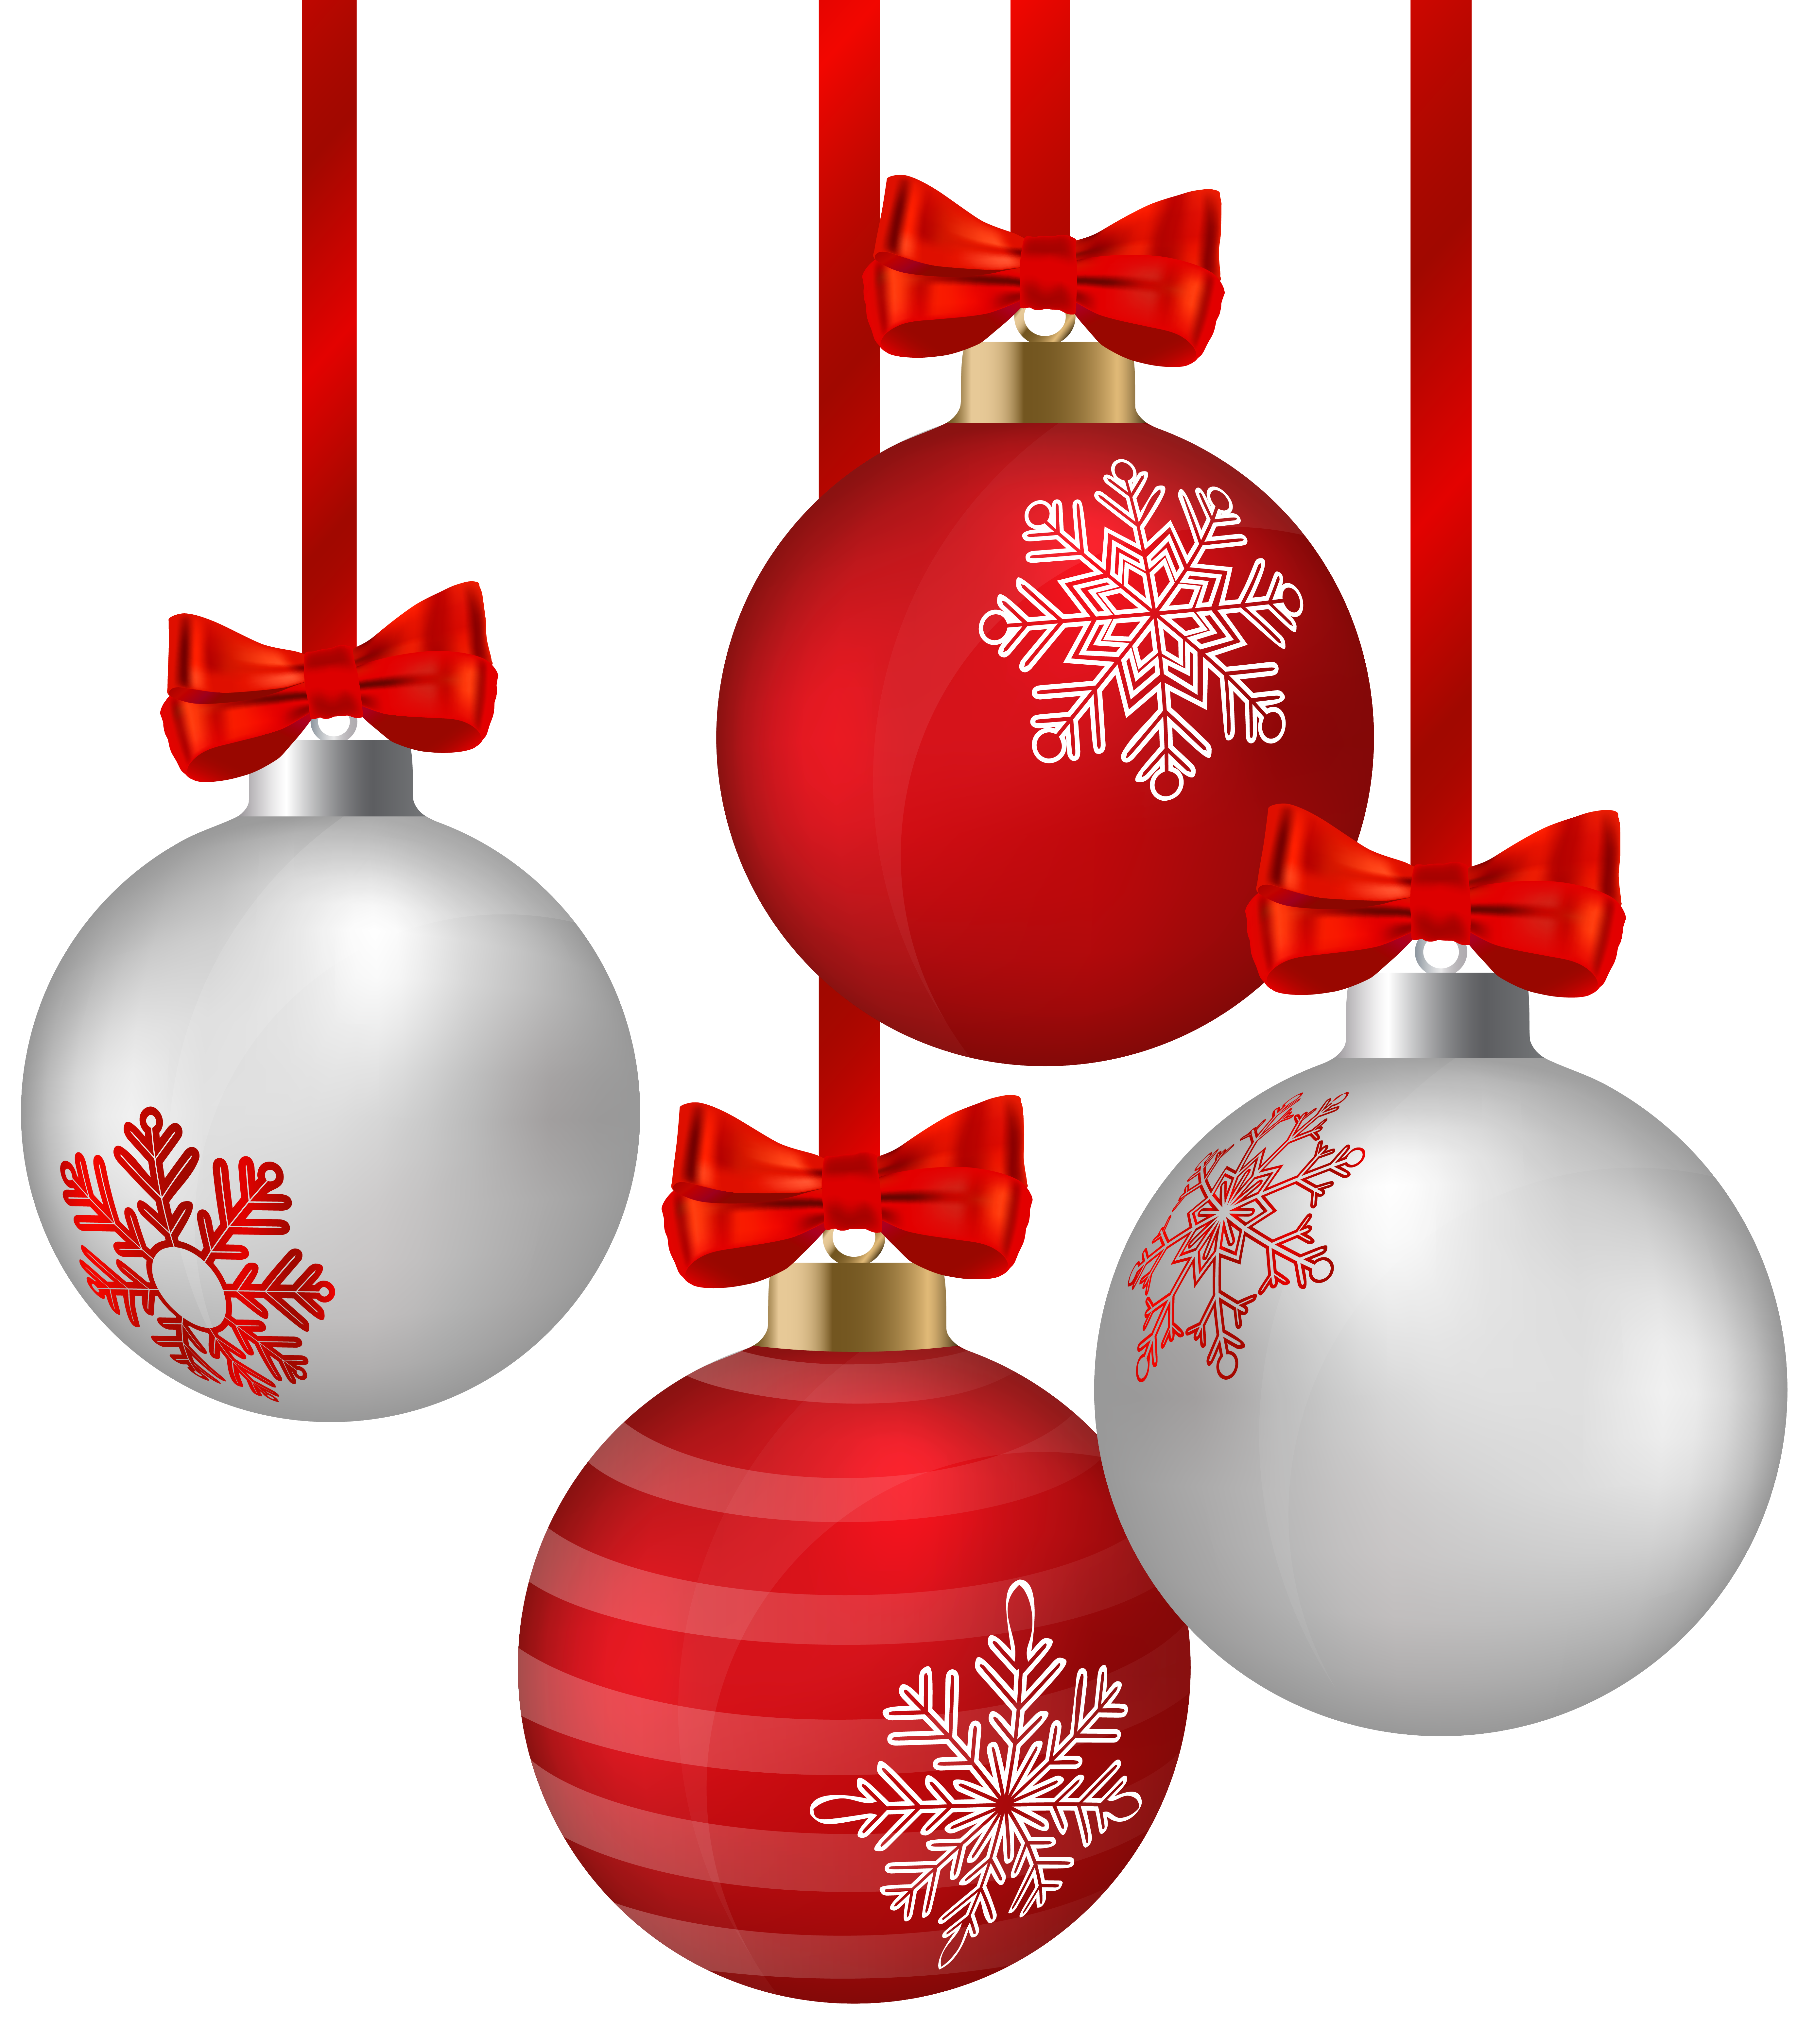 freeuse download White and red hanging. Ornaments clipart